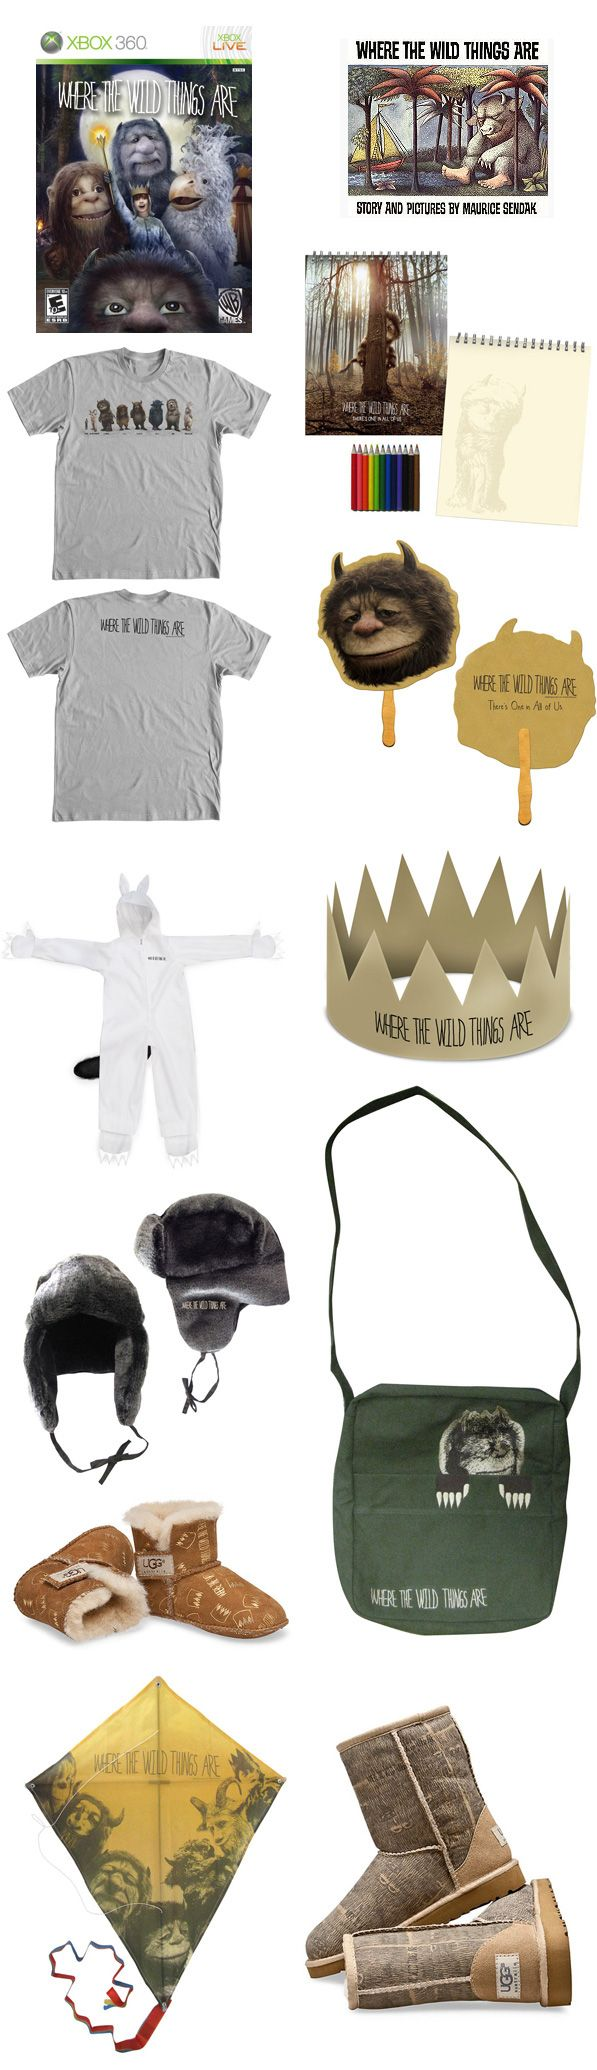 Where the Wild Things Are giveaway Collider.jpg